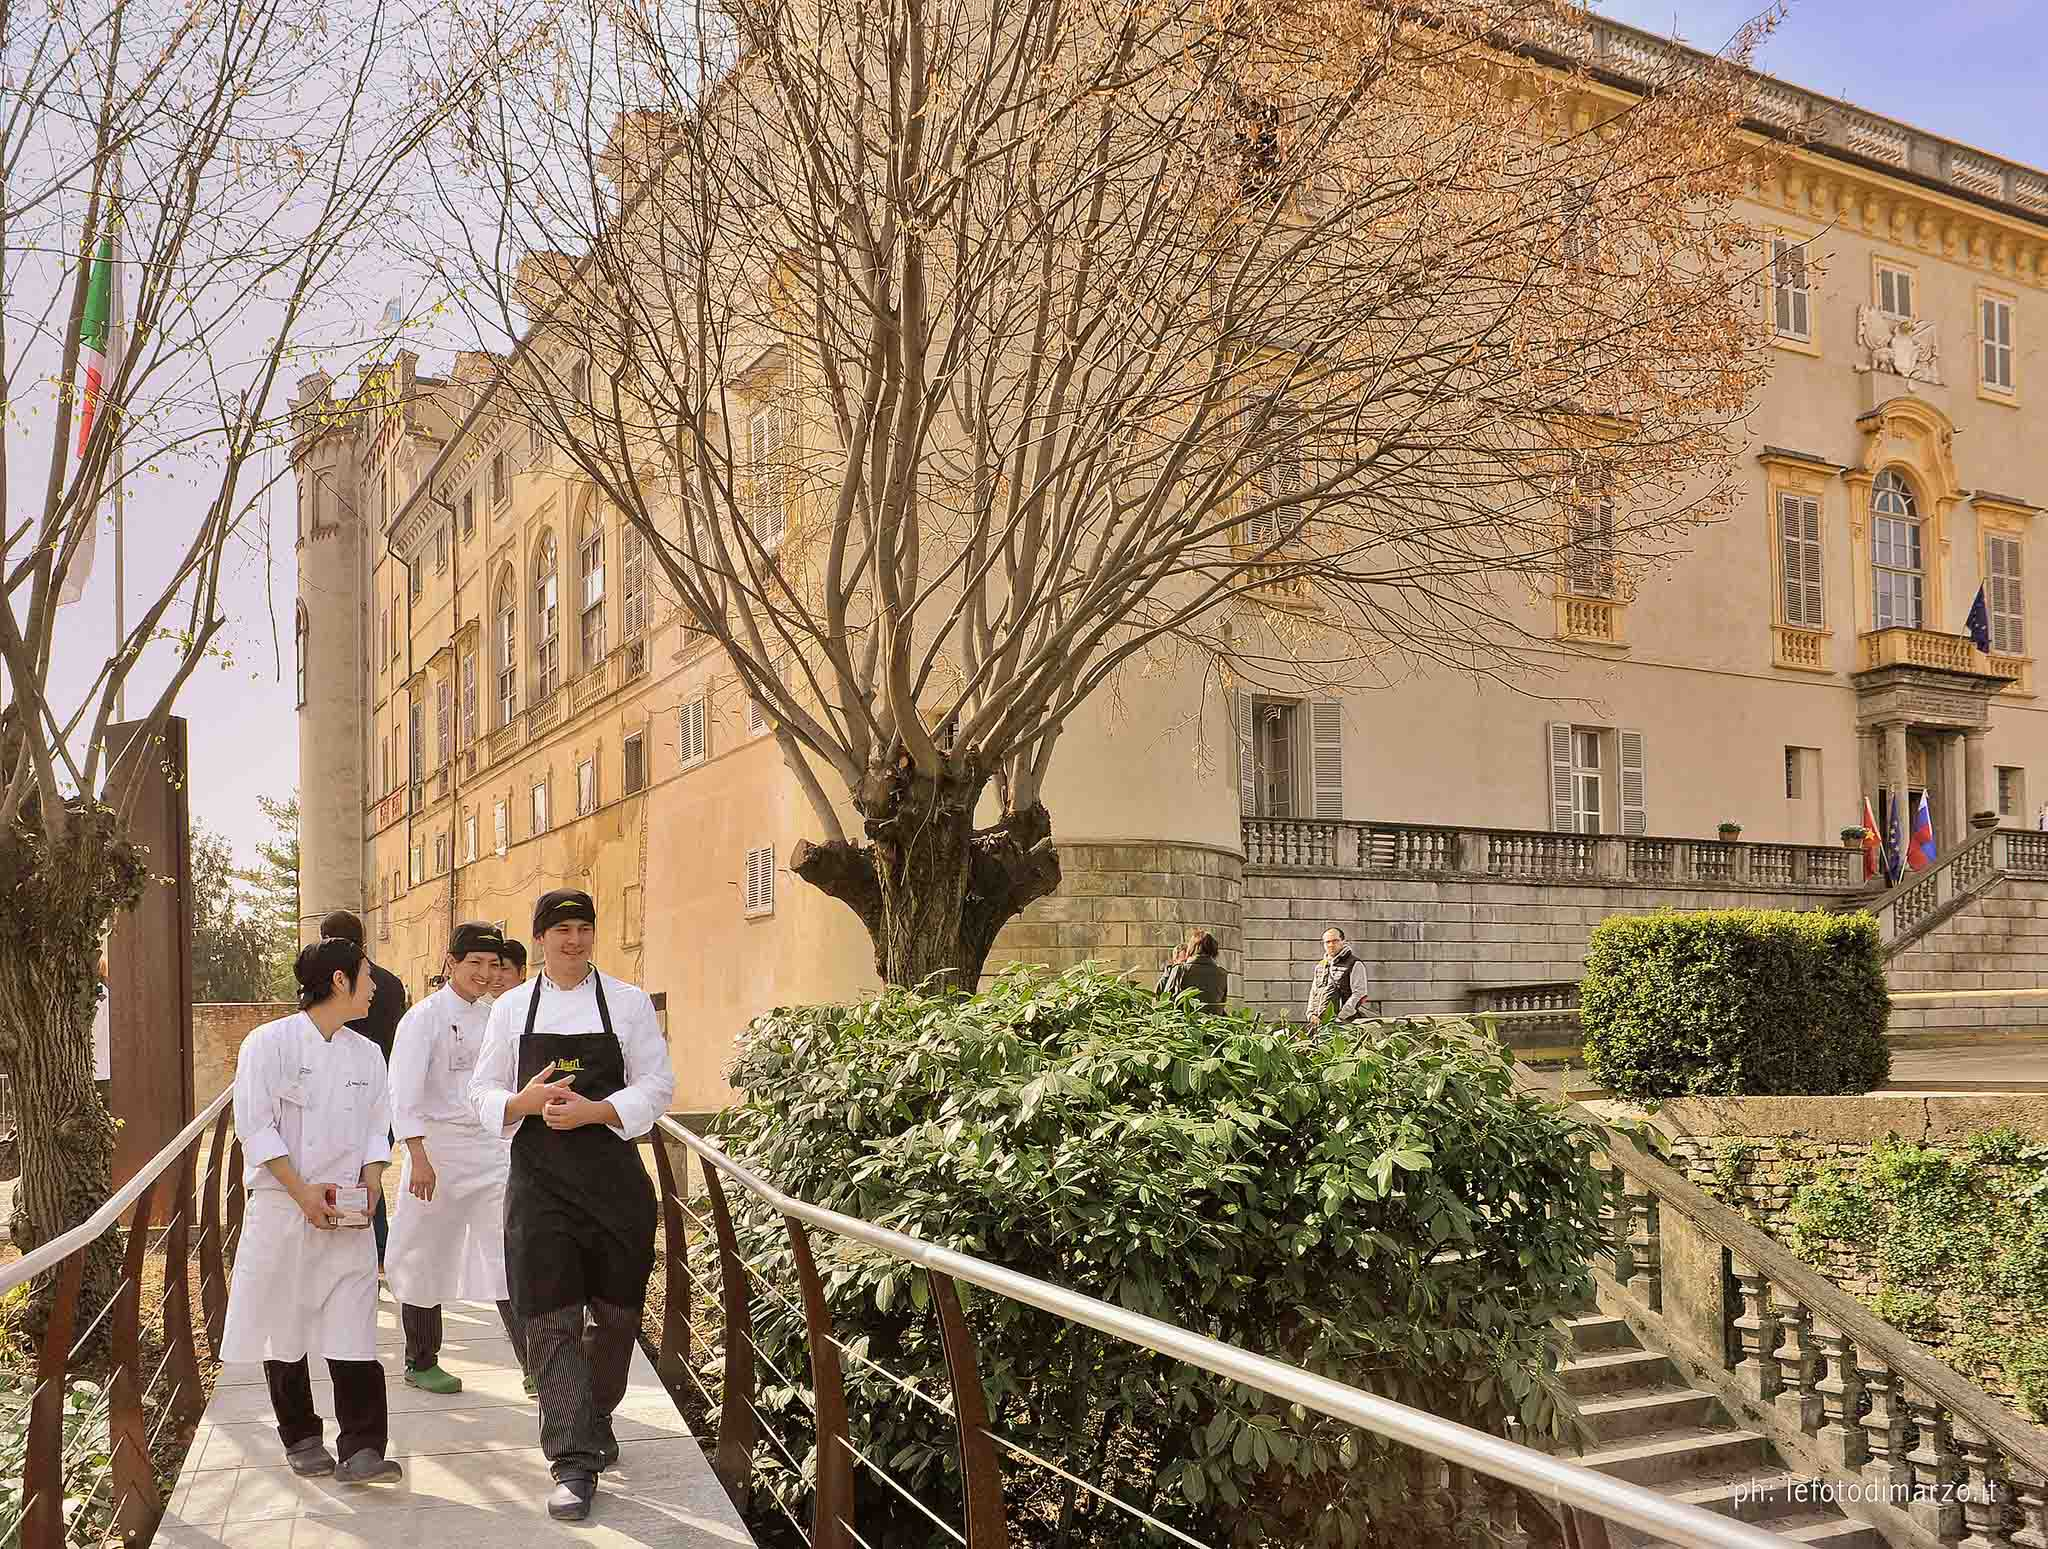 INTERNATIONAL CULINARY INSTITUTE FOR FOREIGNERS (Asti, Piedmont) - Founded in 1991 to foster and promote talian Cuisine and Italian products among professionals who work in restaurants abroad. Since its establishment, ICIF organizes Master Courses and Short Courses for groups of young italian and foreign professionals (Chefs, Sommeliers, Restaurateurs), who want to specialize in Italian Oenology and Cuisine.